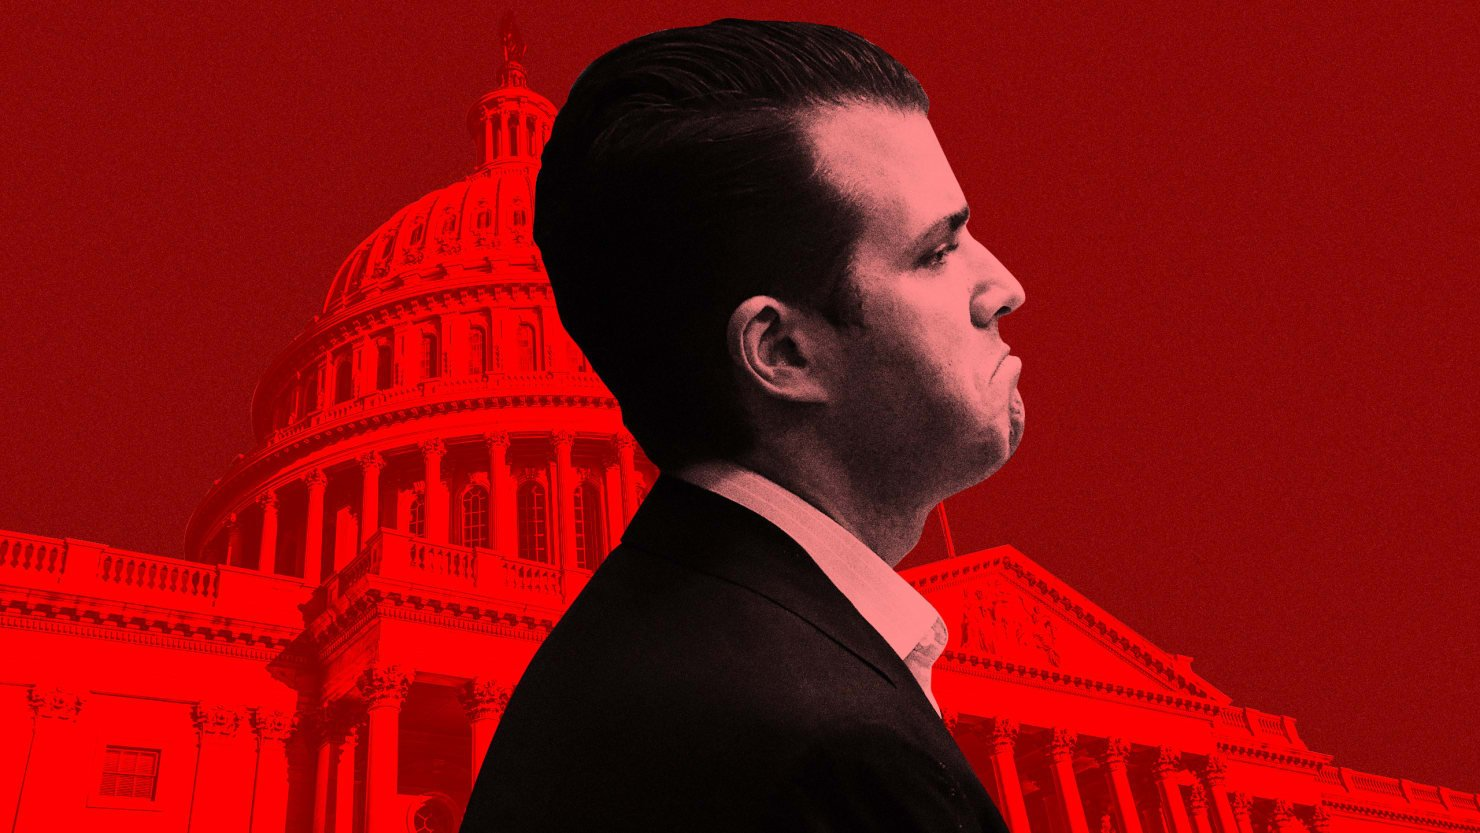 NEW: Don Jr.'s Russian connection has major ties to Kremlin spies. https://t.co/FjmzXGPEs4 https://t.co/ncqsPI93qH